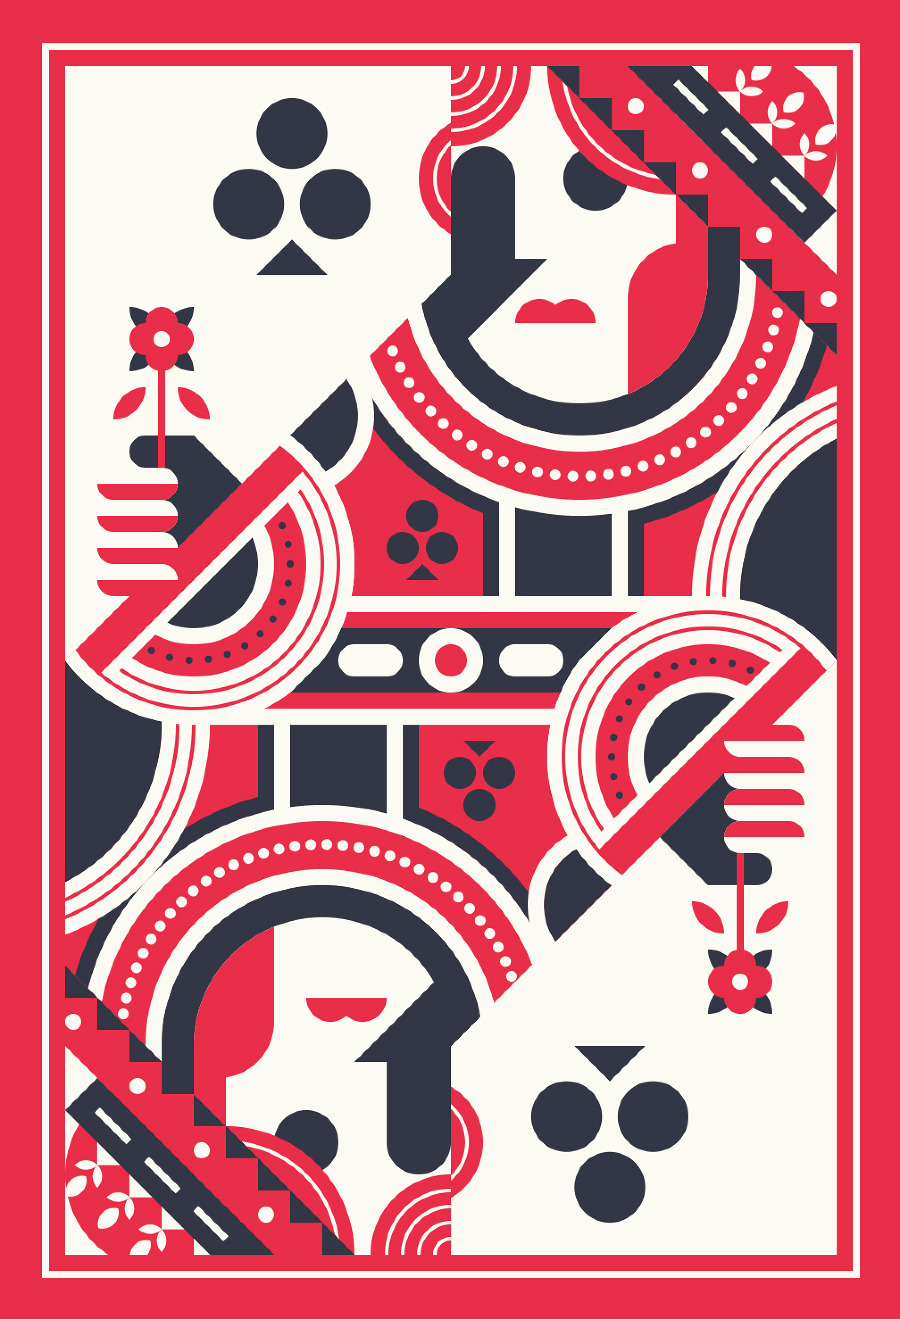 Playing Card Art: The Queen Of Clubs By Justin Mezzell